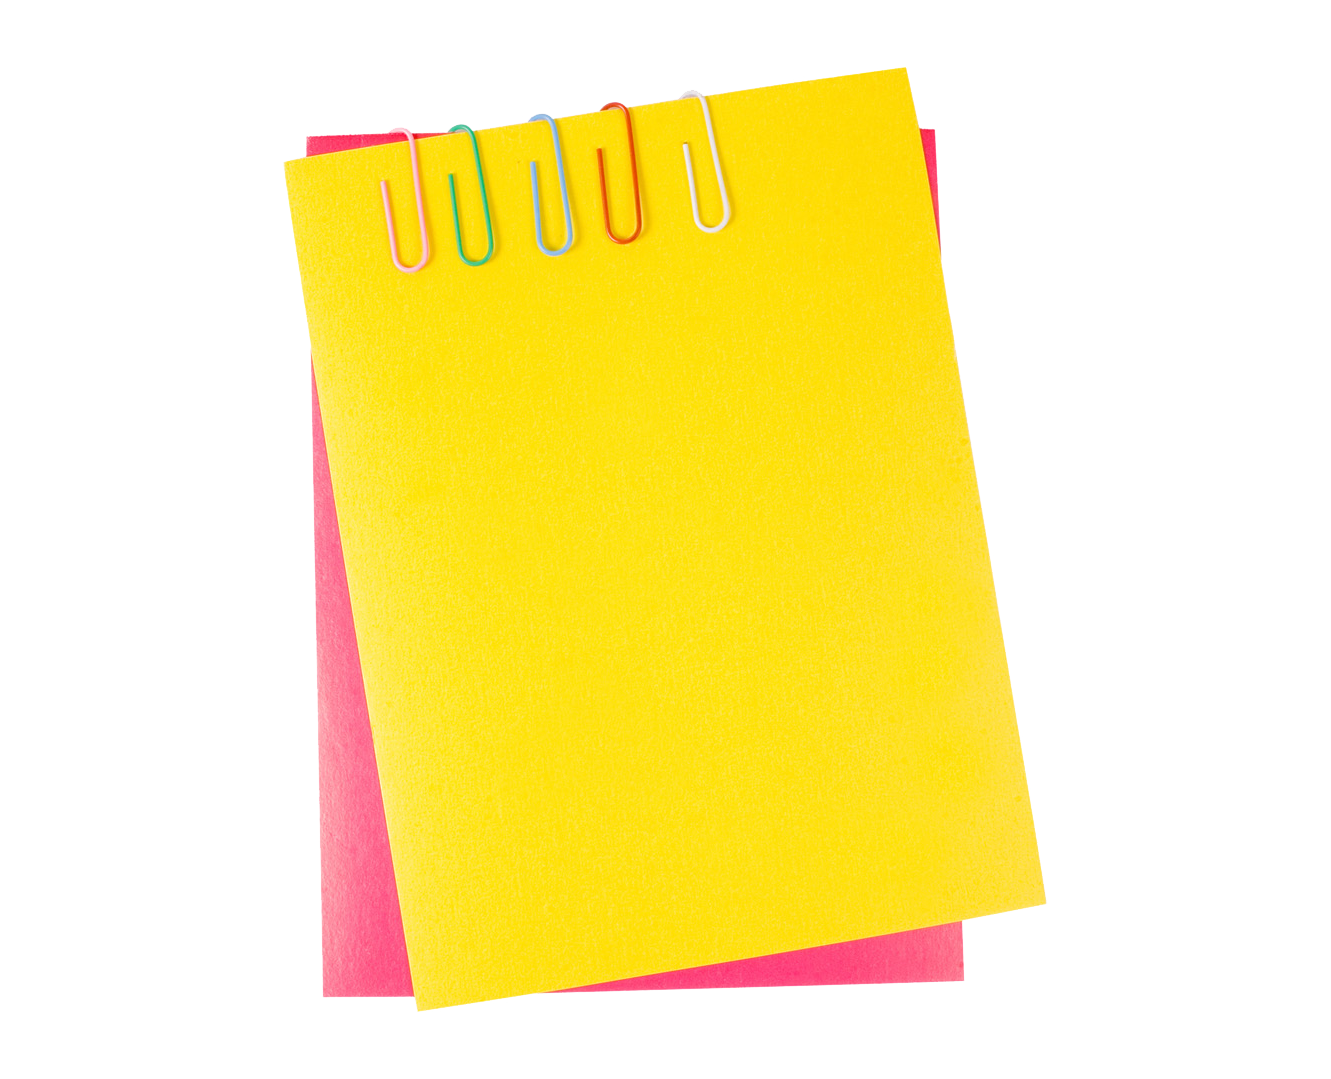 Post notes png. Paper it note u